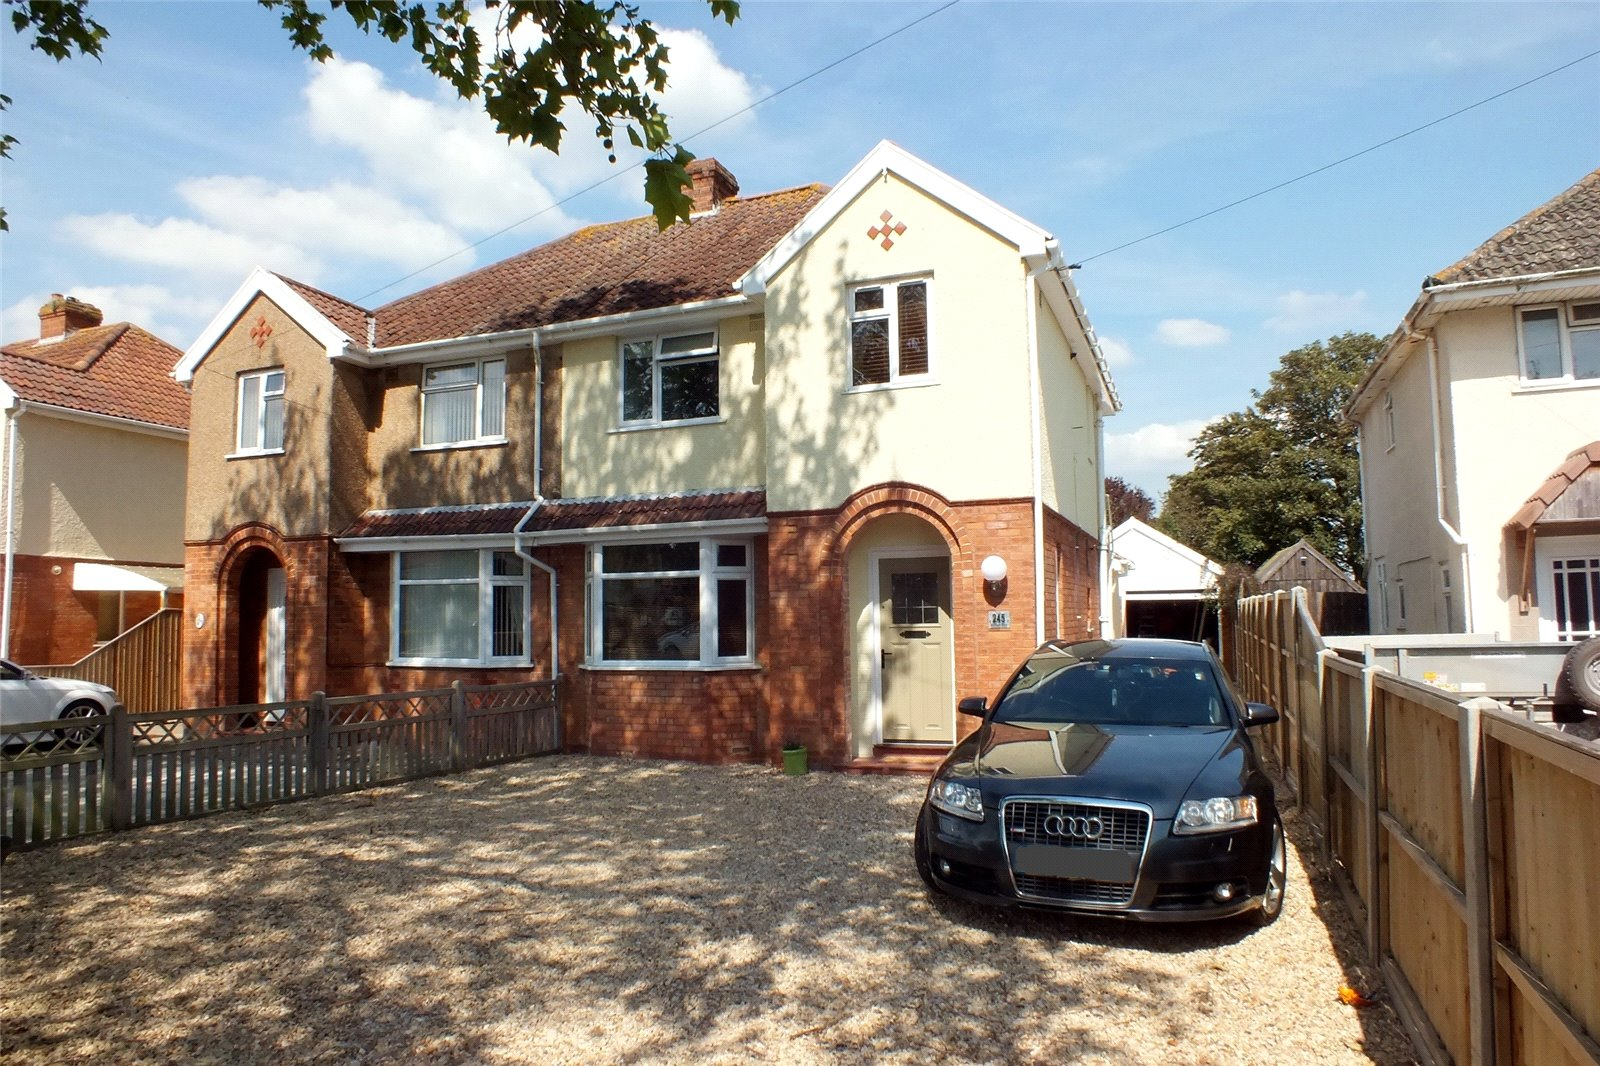 3 Bedrooms Semi Detached House for sale in Burnham Road Burnham on Sea Somerset TA8